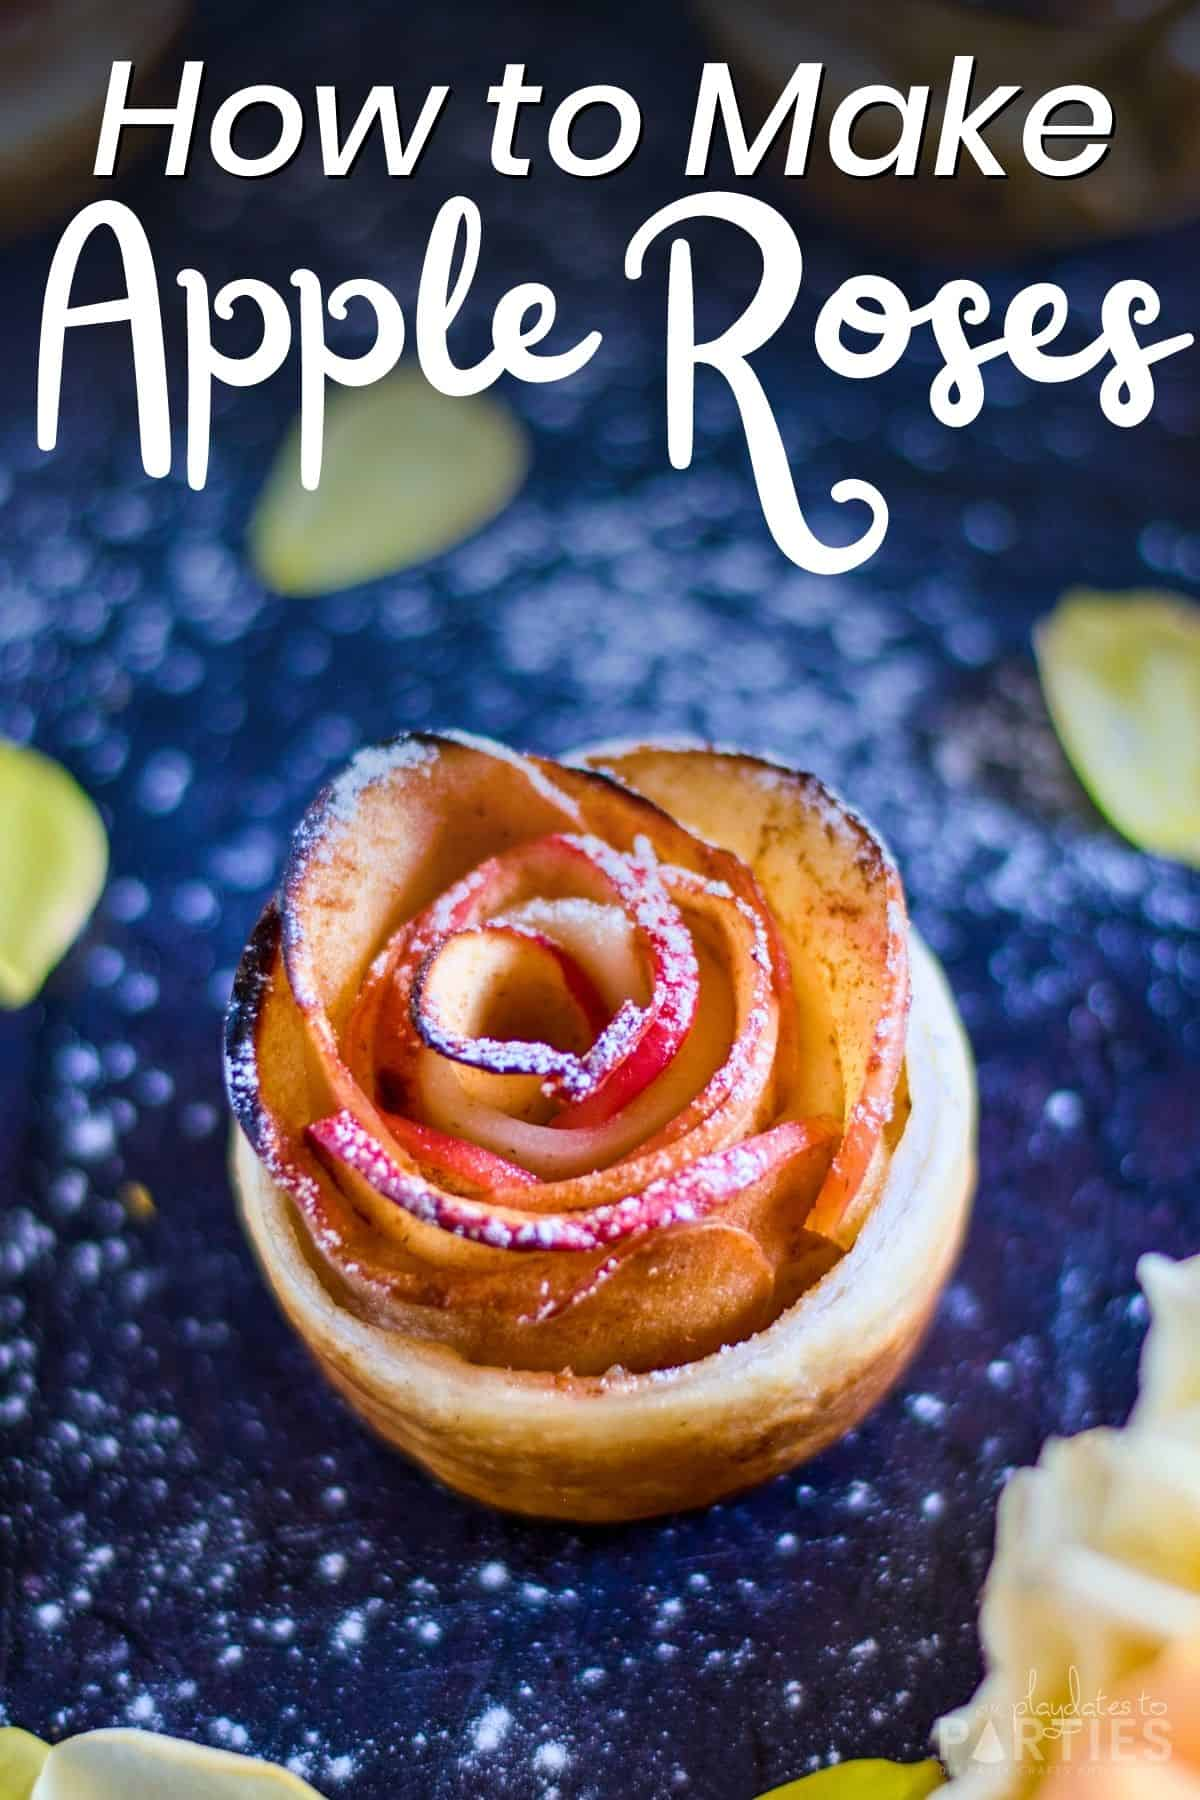 close up of a finished apple rose on a dark surface with the text overlay how to make apple roses